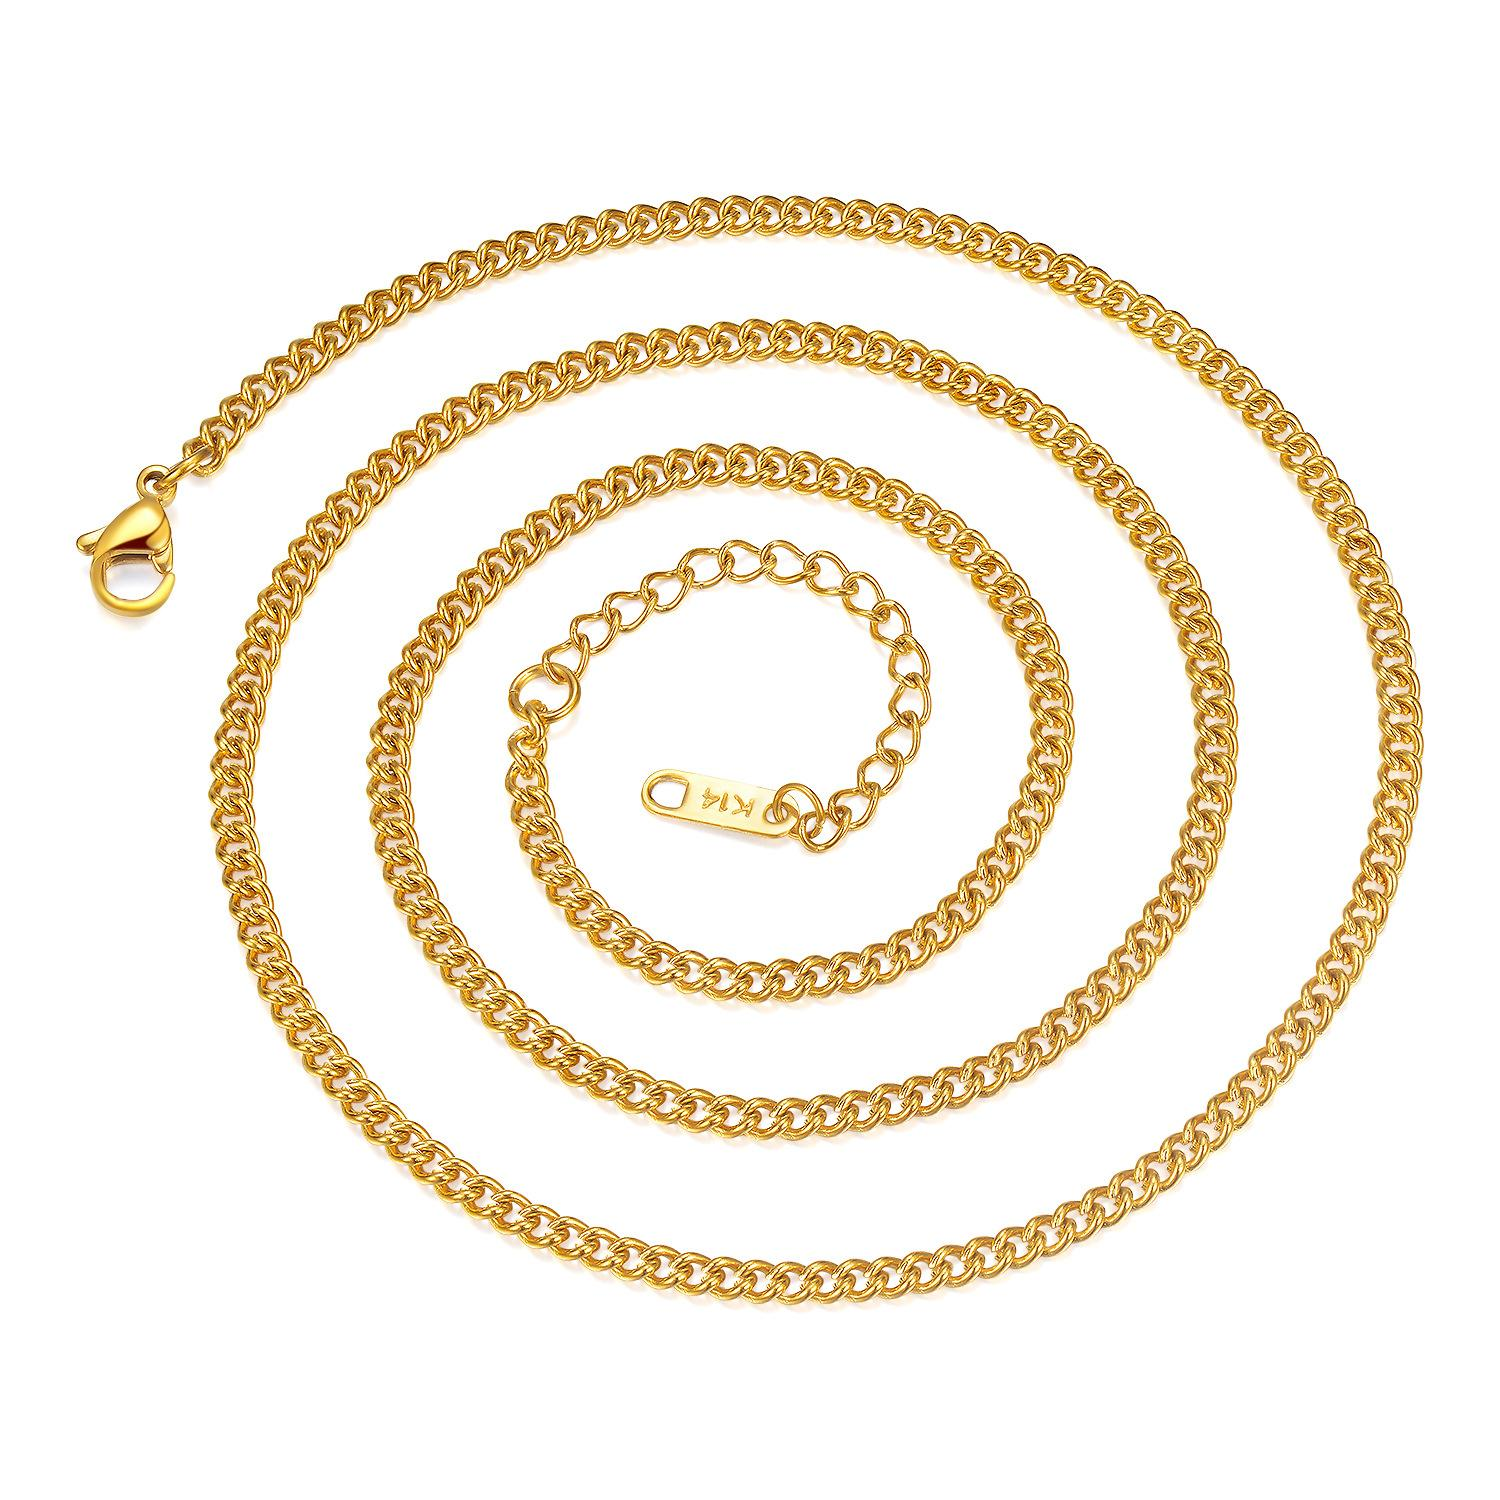 jewelry dominique product chain gold s category chains archives